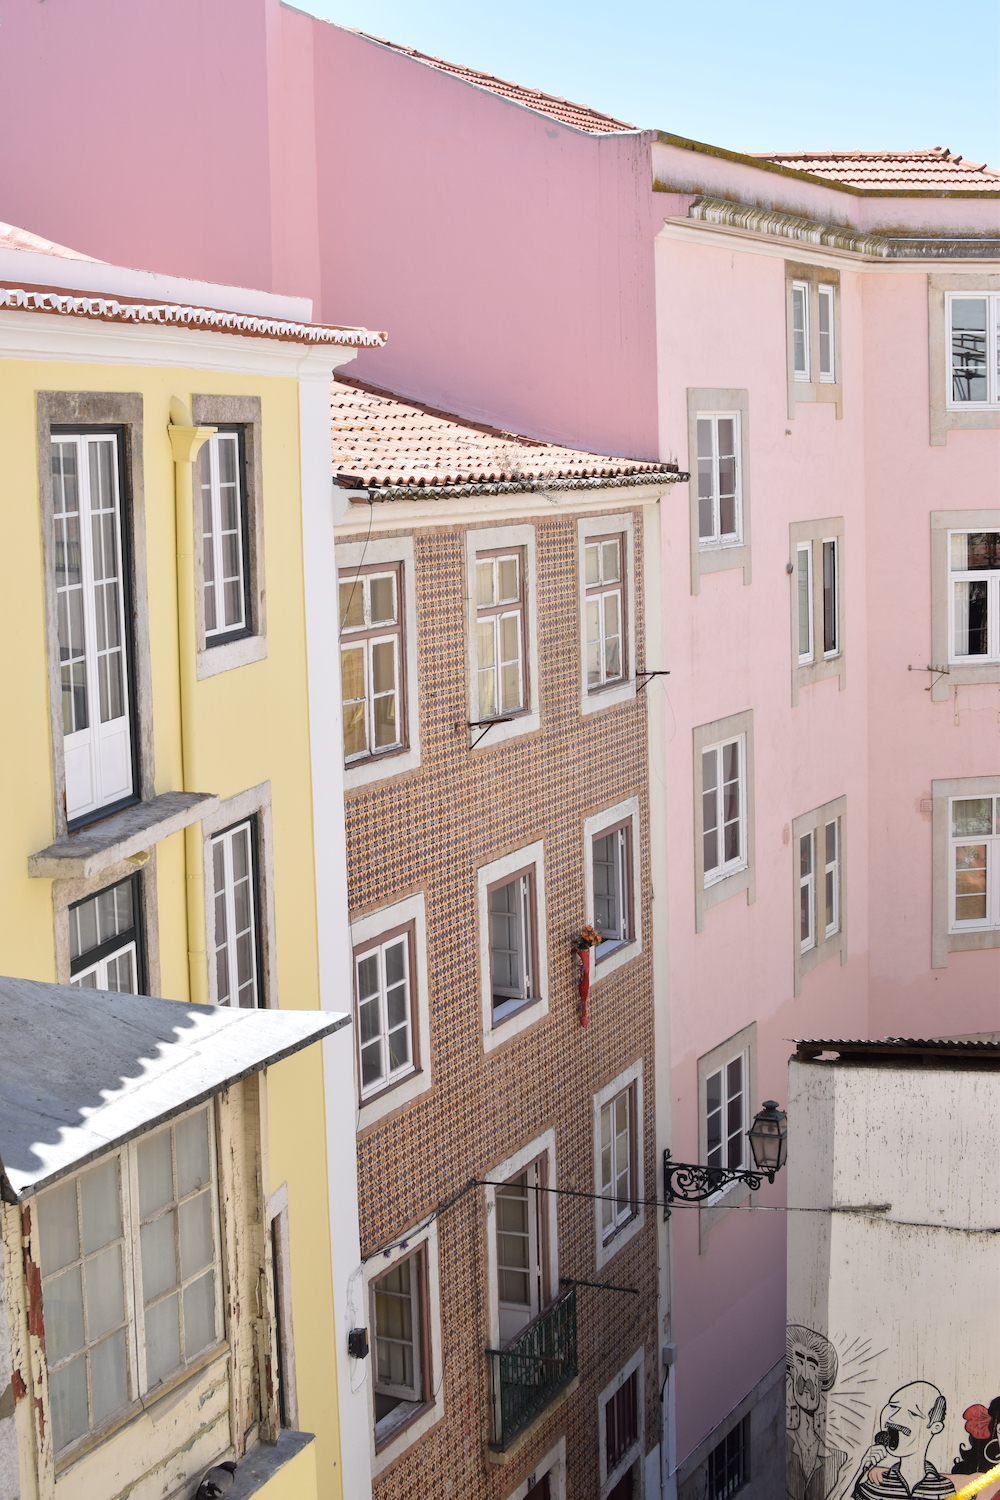 Colourful-houses-Alfama-Lisbon.JPEG